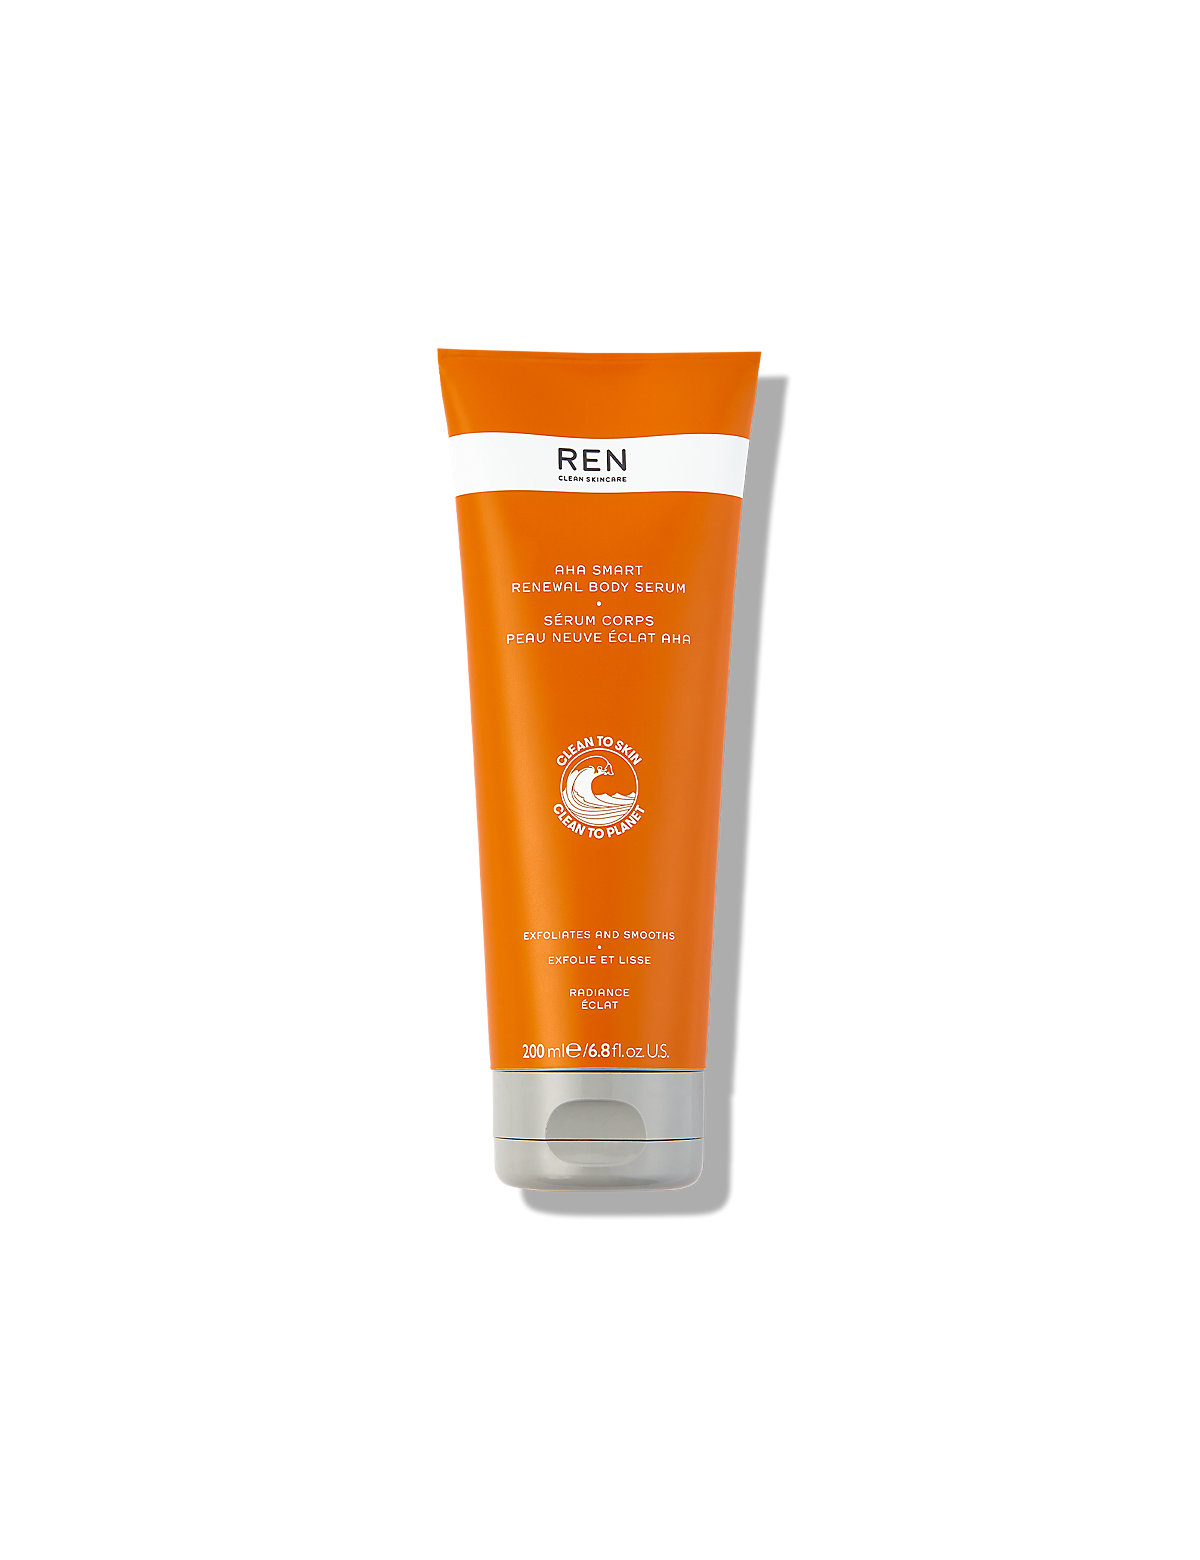 REN AHA Smart Renewal Body Serum 200ml